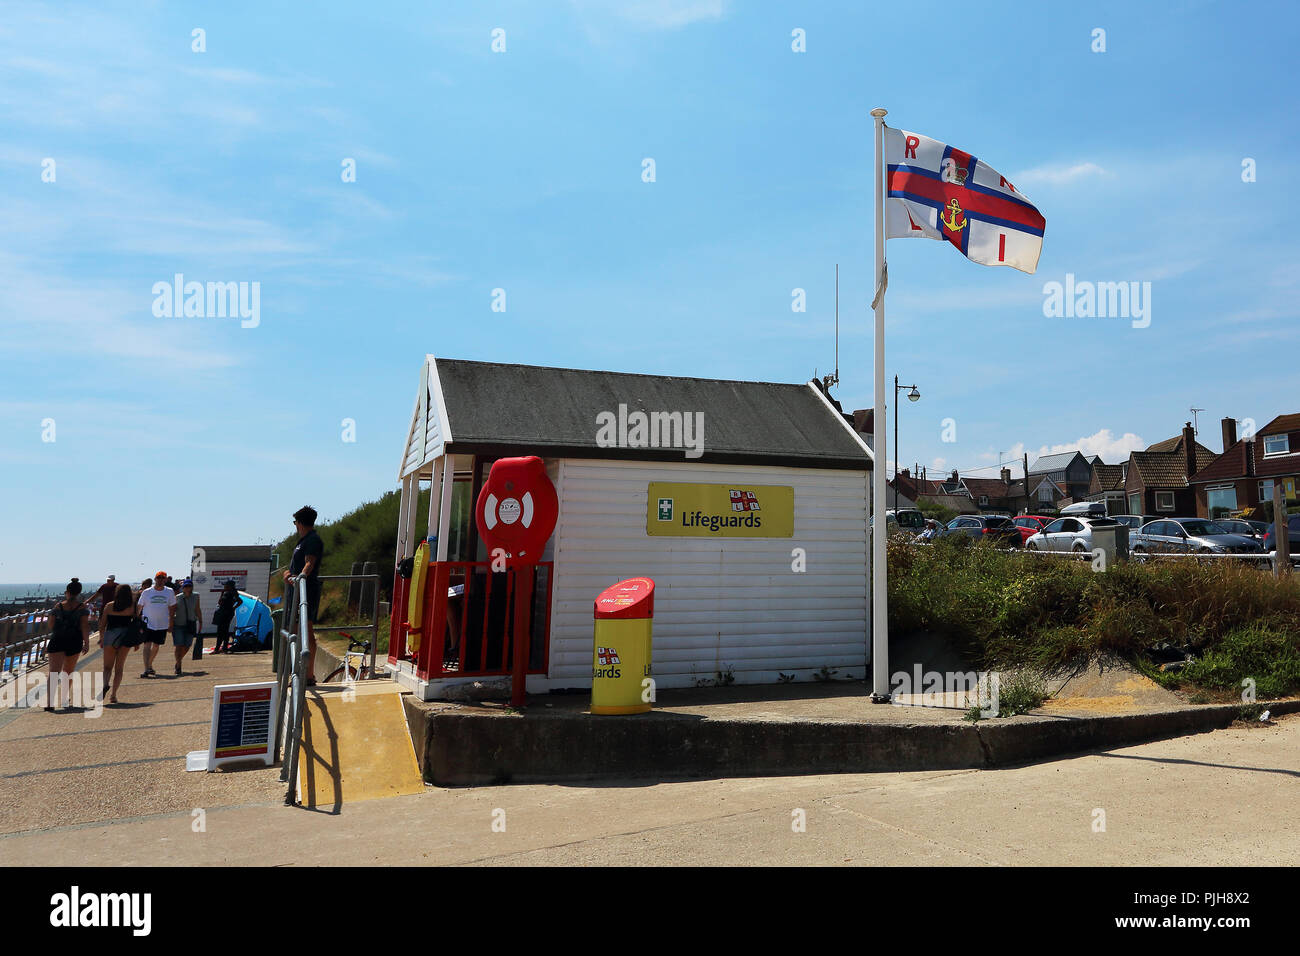 An RNLI lifeguards base in a beach hut on the promenade in Southwold, Suffolk, UK - Stock Image